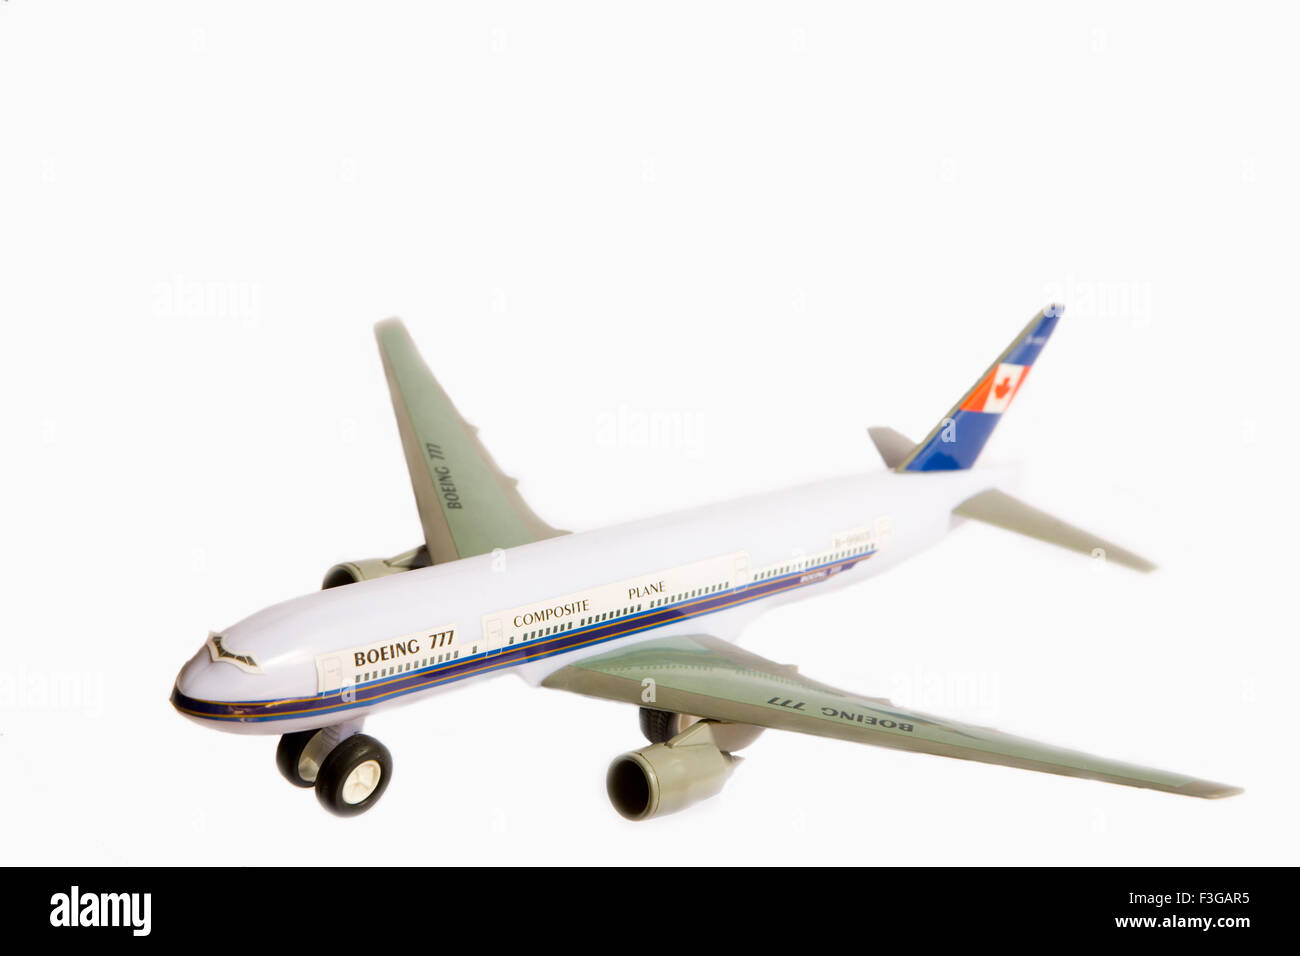 Toy aeroplane Boeing 777 on white background - Stock Image